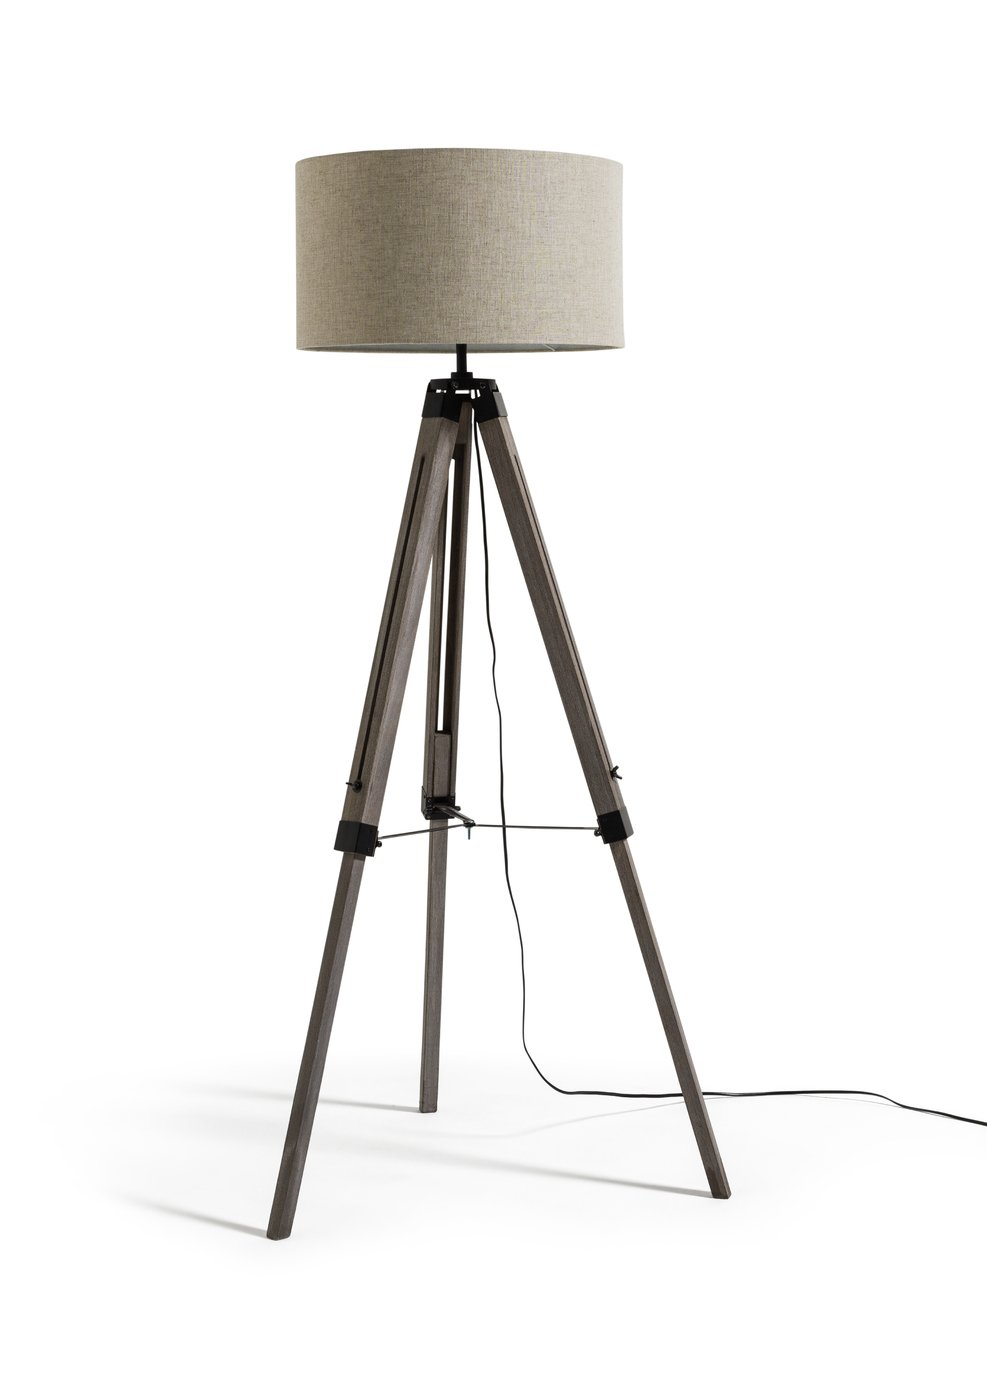 Argos Home Highland Lodge Colonial Tripod Floor Lamp